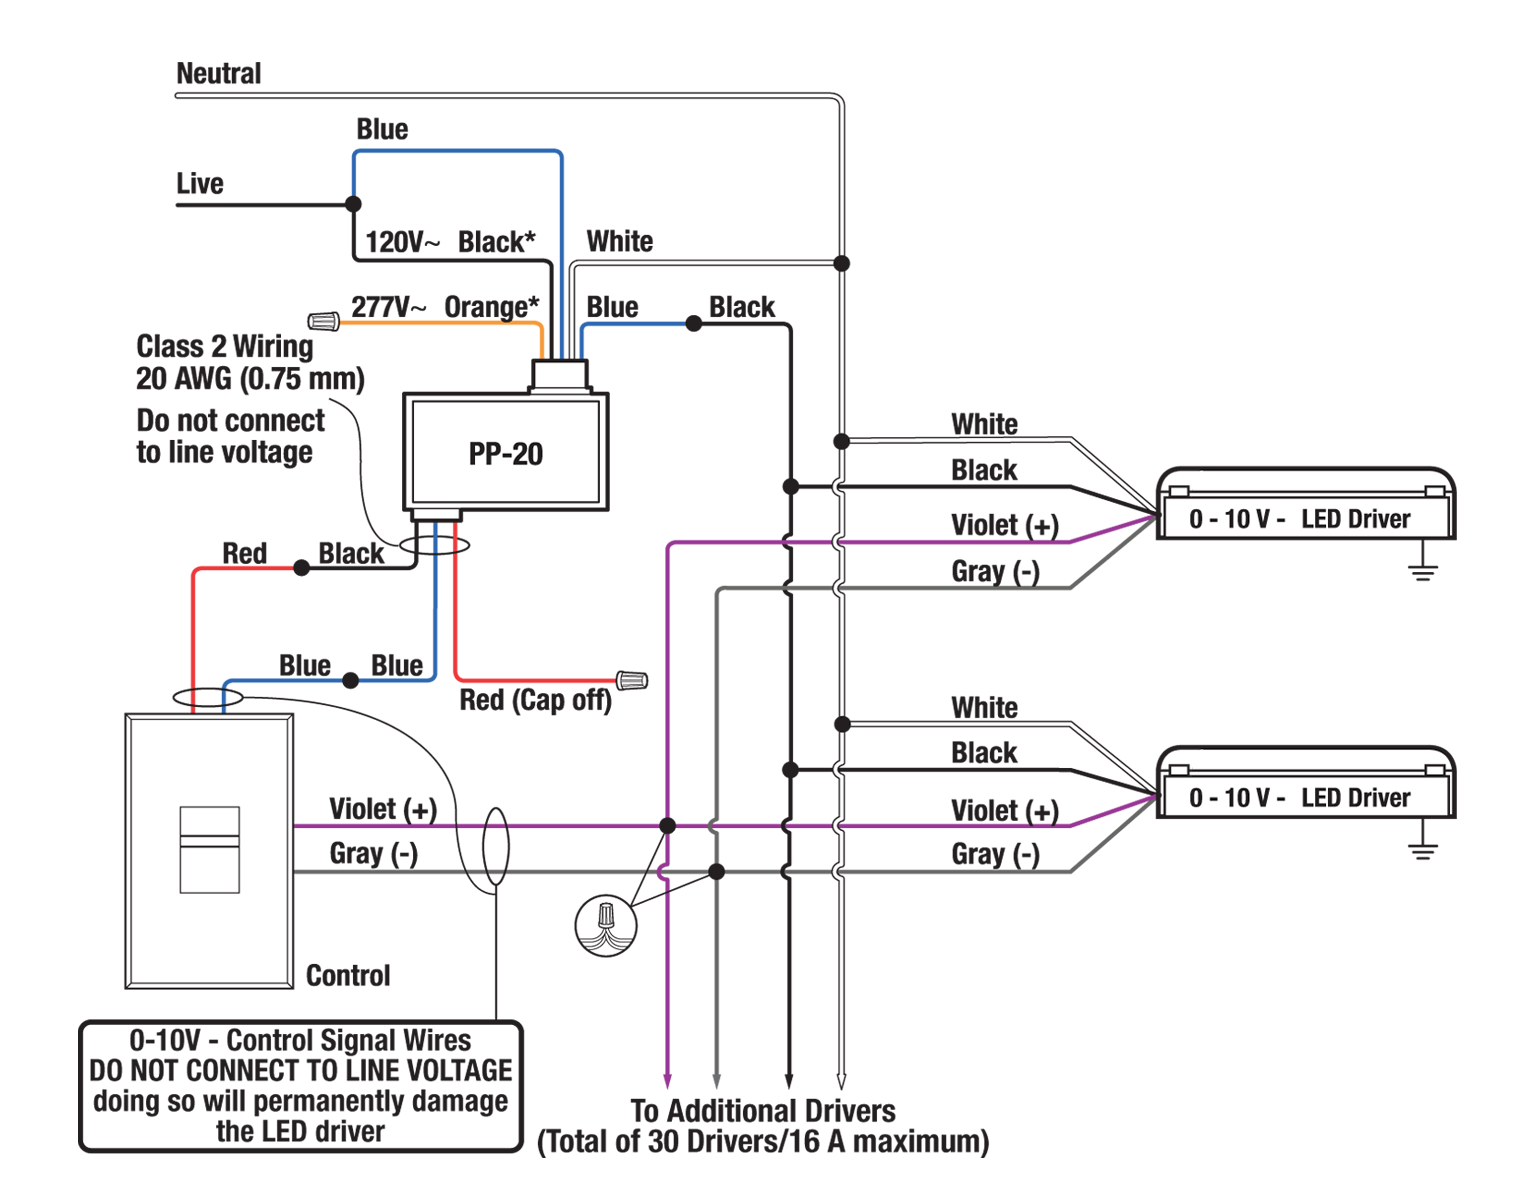 lutron ecosystem ballast wiring diagram cw 5531  lutron led dimmer switch wiring diagram download diagram  lutron led dimmer switch wiring diagram